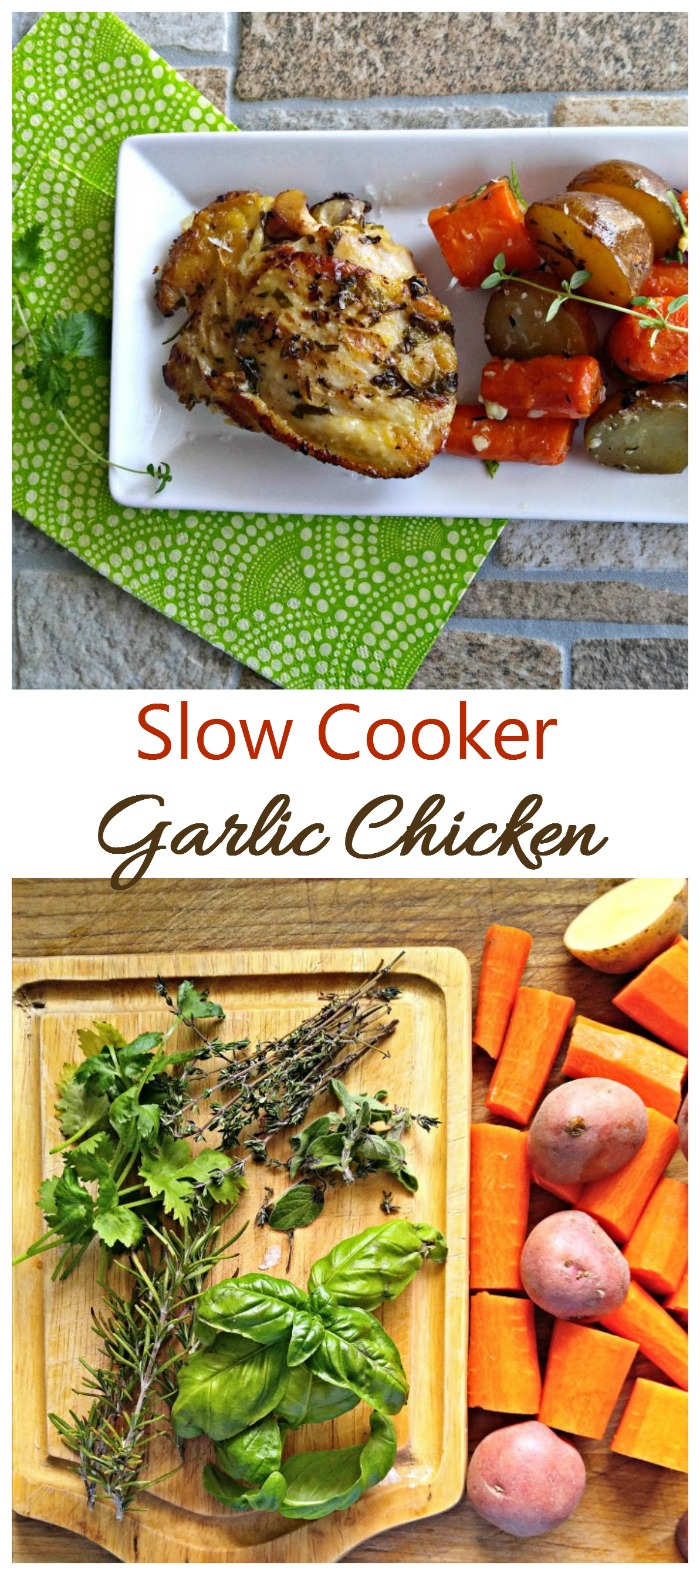 This slow cooker garlic chicken with red potatoes and carrots is beautifully flavored with a handful of fresh herbs and diced garlic